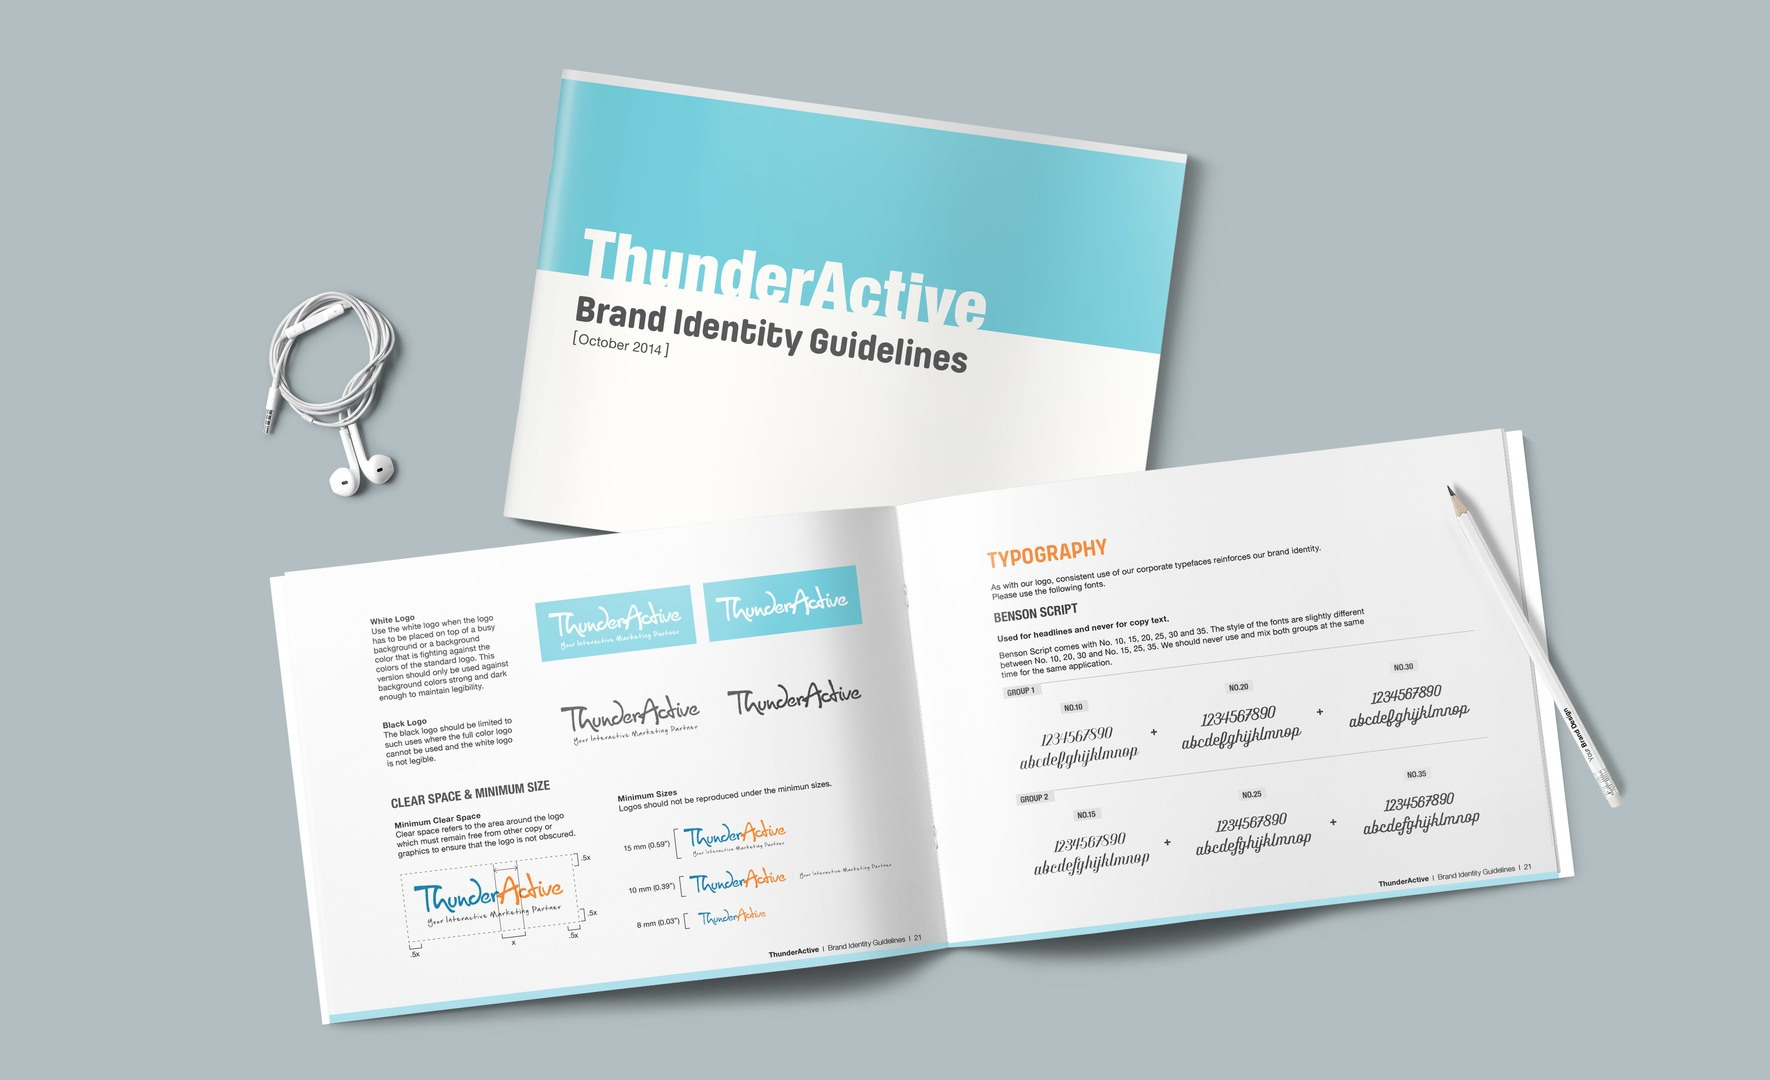 ThunderActive Branding guidelines